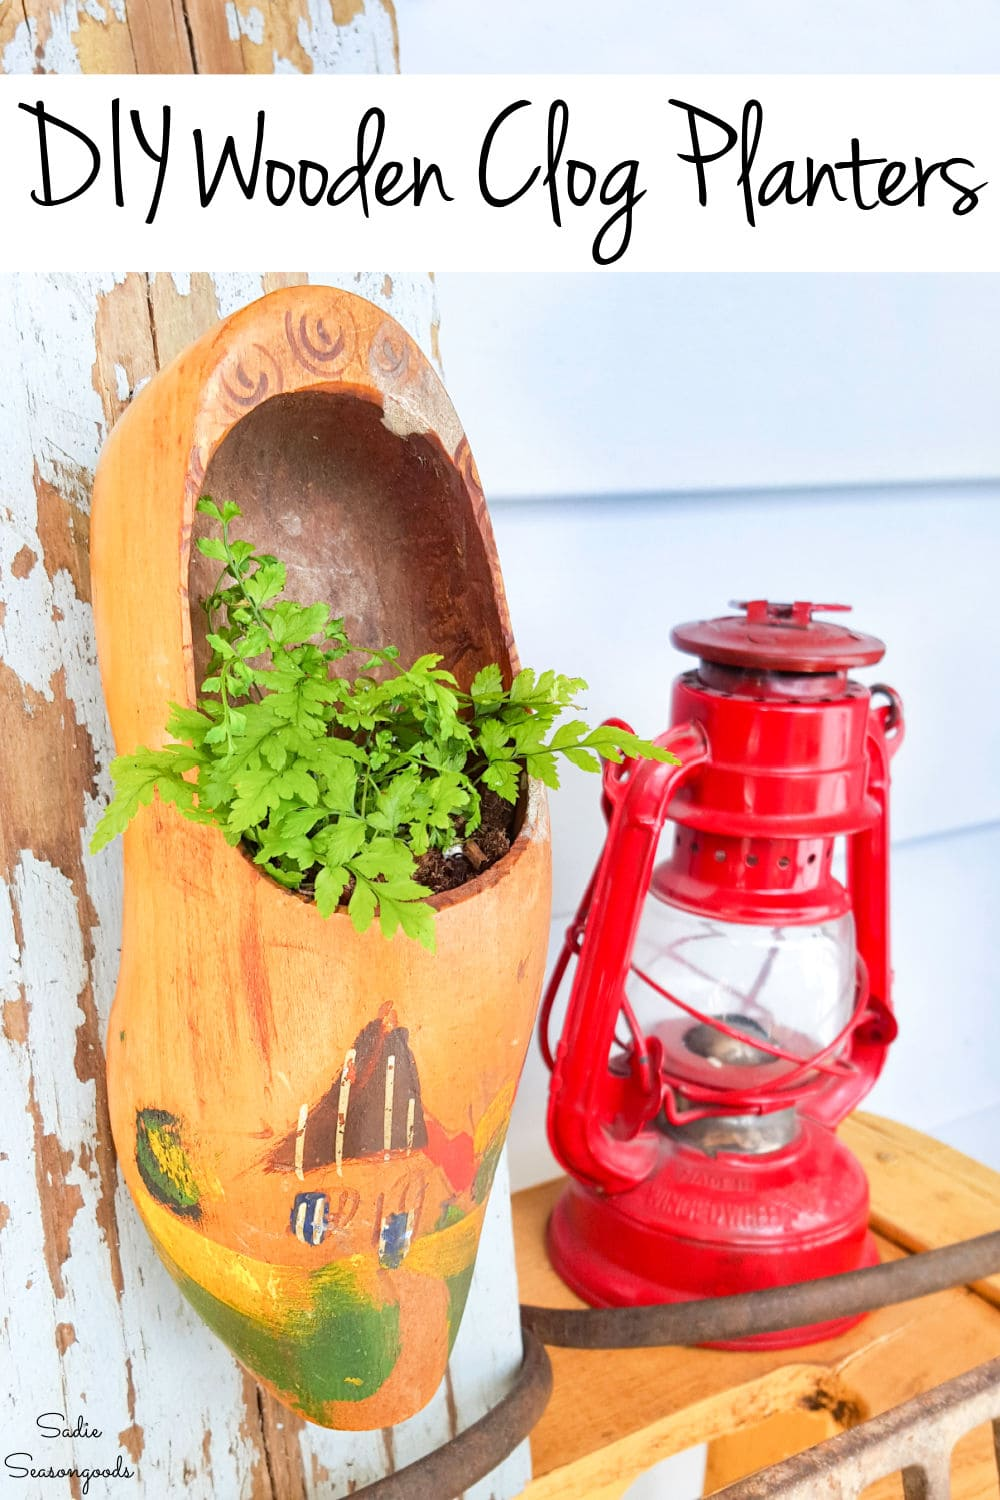 Upcycled planters from Dutch wooden clogs